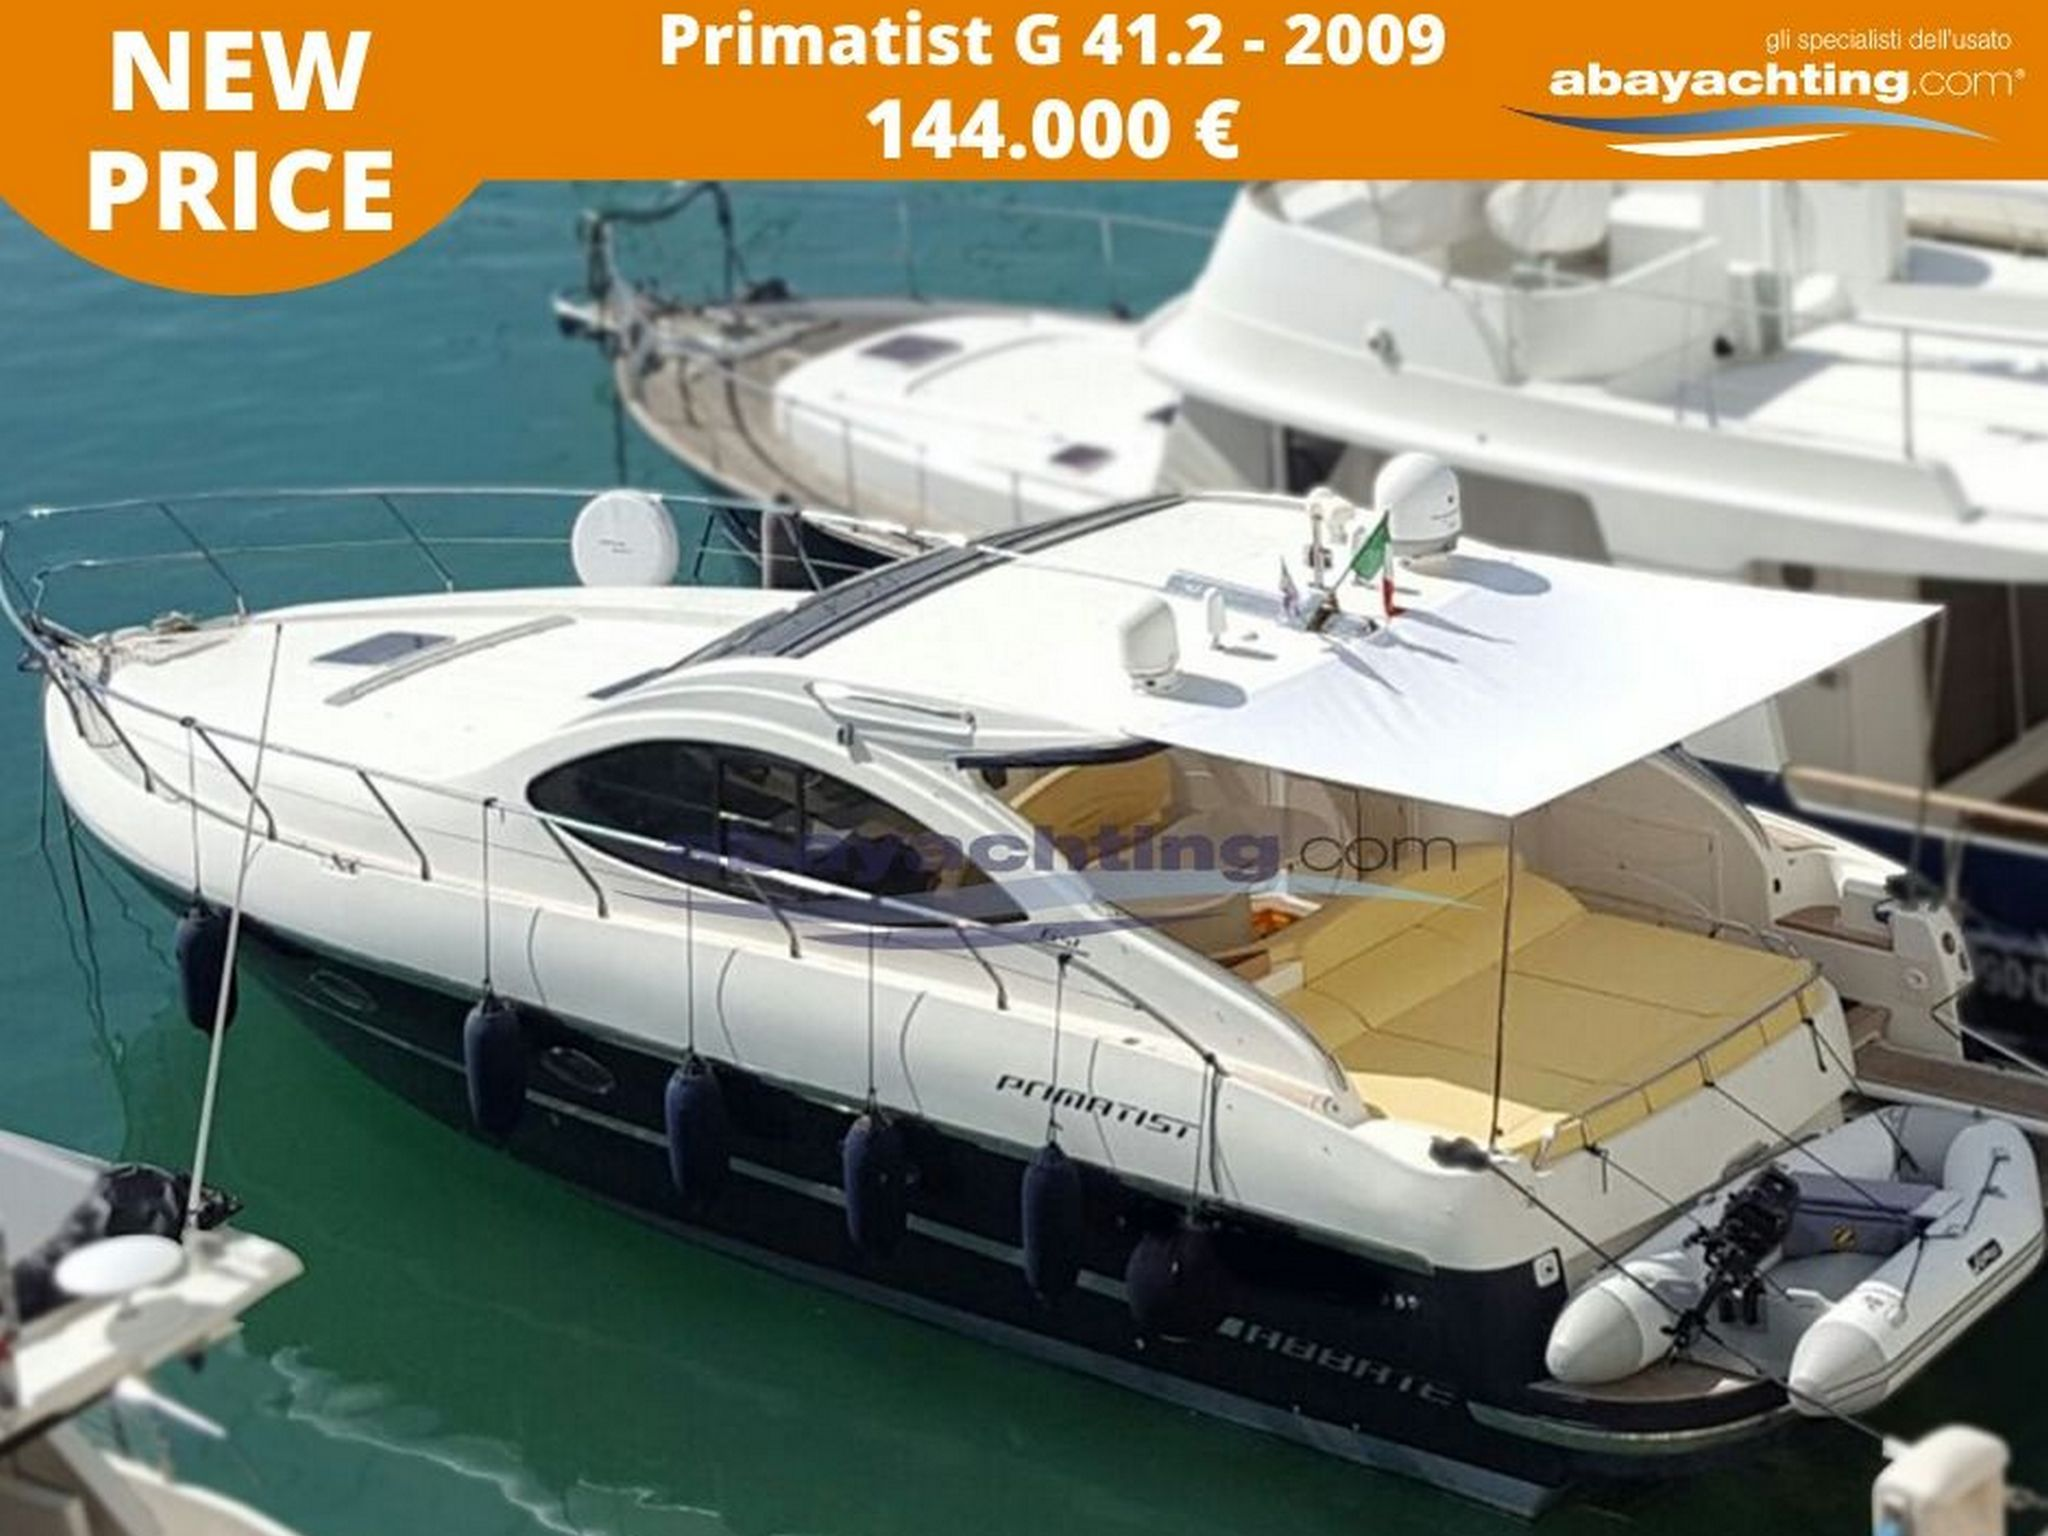 Price reduction Primatist G 41.2